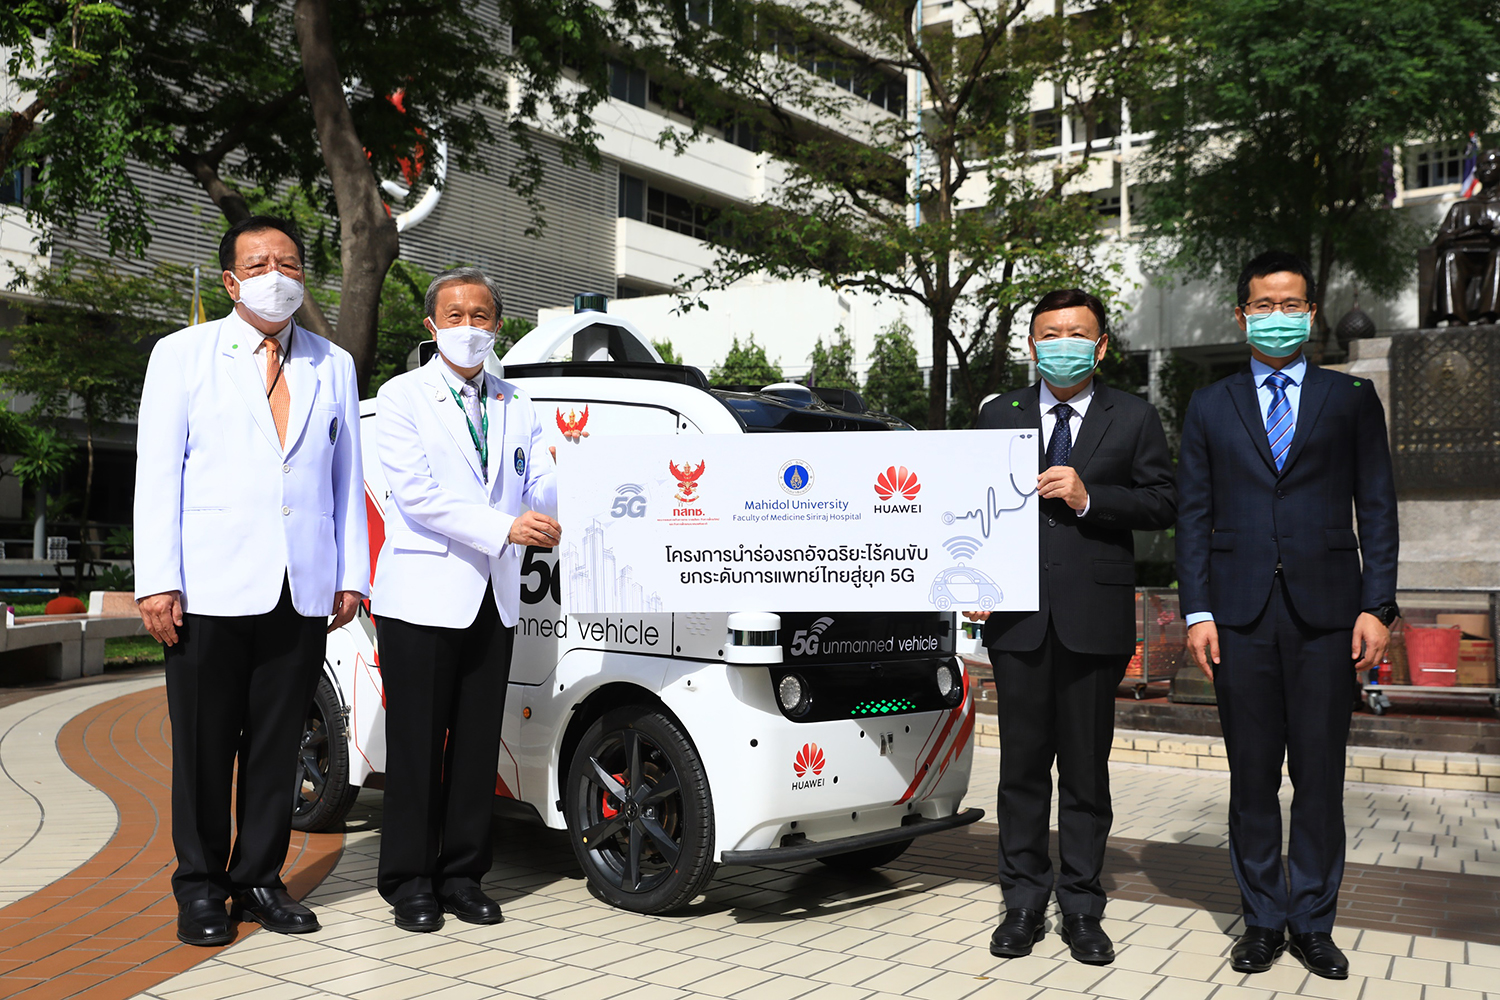 """Pictured: Mr. Takorn Tantasith (3rd left),Secretary-General of the Office of the National Broadcasting and Telecommunications Commission (NBTC), together with Mr. Abel Deng (4th left), CEO of Huawei Technologies (Thailand) Co., Ltd., provide a 5G unmanned vehicle to Siriraj Hospital, led  by Prof. Dr. Prasit Watanapa (2nd left), Dean of Faculty of Medicine Siriraj Hospital, Mahidol University and Assoc. Prof. Visit Vamvanij (1st left), Director of Siriraj Hospital, under the """"Unmanned Vehicle Pilot Project Driving Thai Healthcare to 5G Era"""" to pioneer the use of unmanned vehicle for the first time in Thailand. The self-driving delivery vehicle takes advantage of 5G technology from Huawei to bring about a contactless medical supplies delivery solution."""